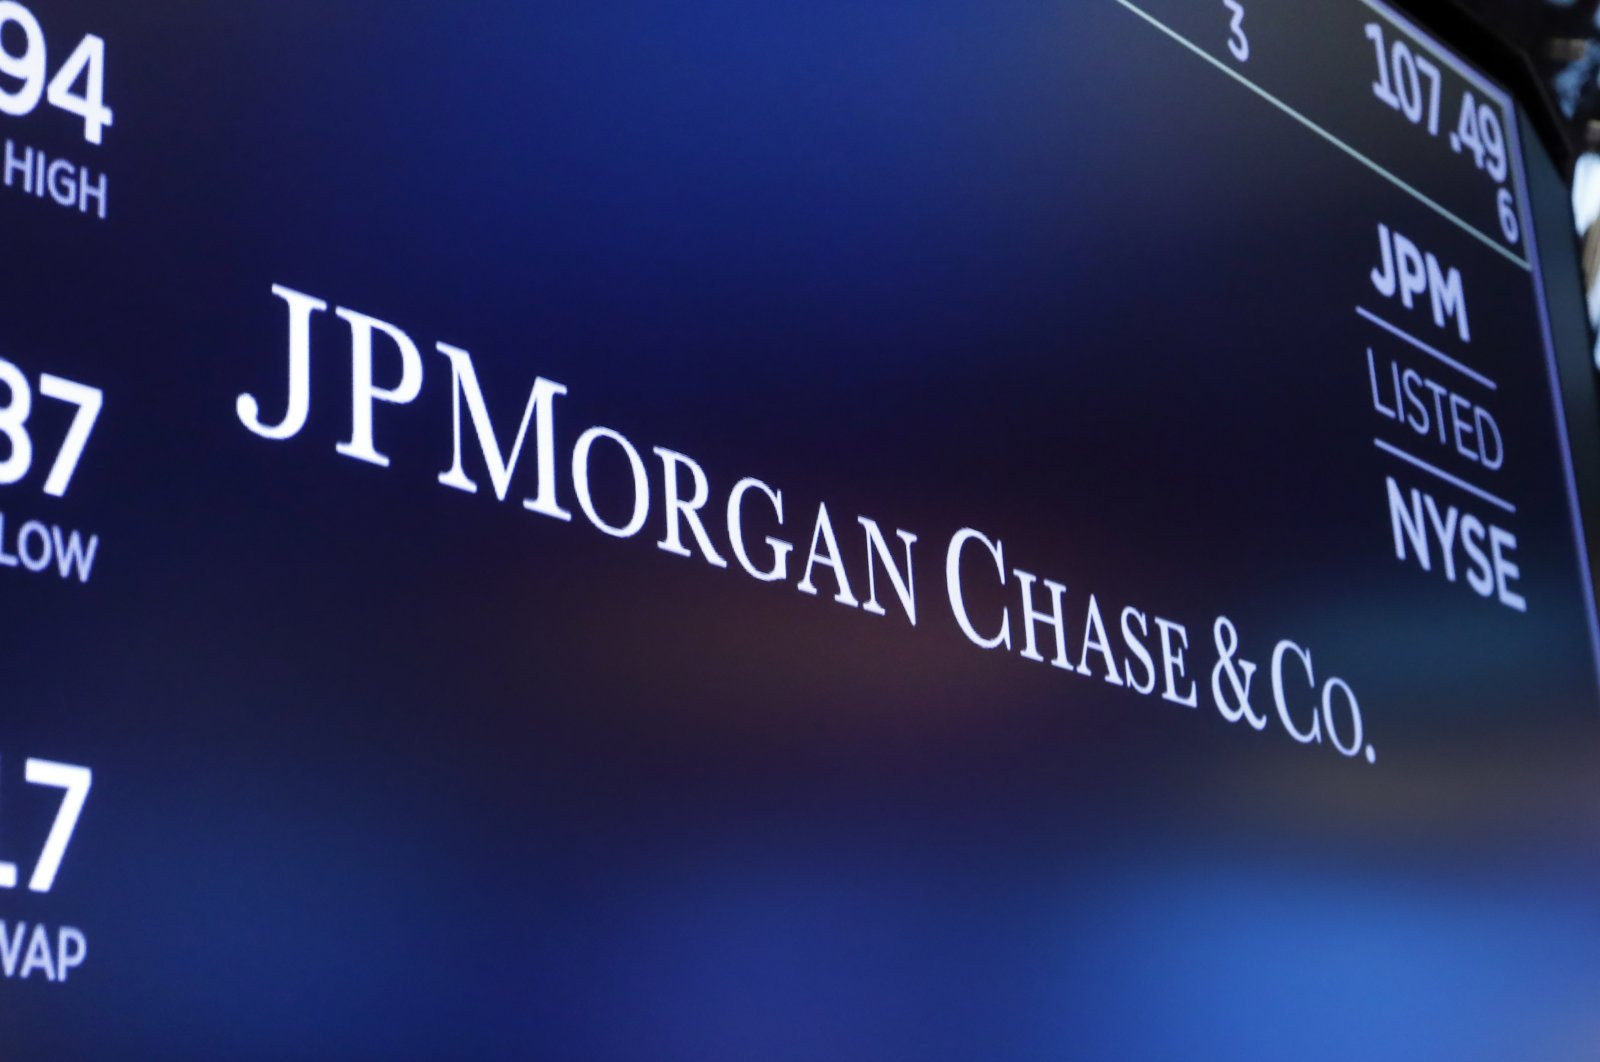 The logo for JPMorgan Chase & Co. appears above a trading post on the floor of the New York Stock Exchange in New York, Aug. 16, 2019. (AP Photo)